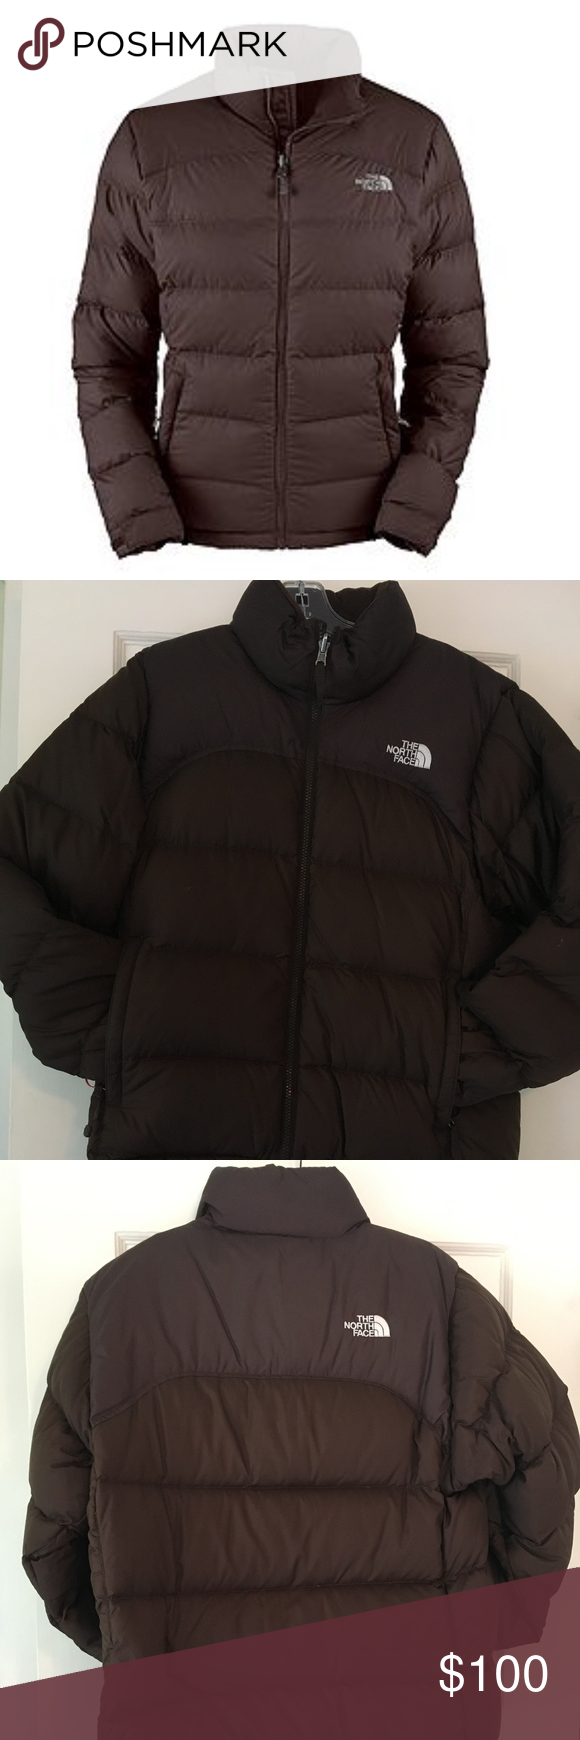 The North Face Women S Brown Nuptse Jacket North Face Women Jackets The North Face [ 1740 x 580 Pixel ]